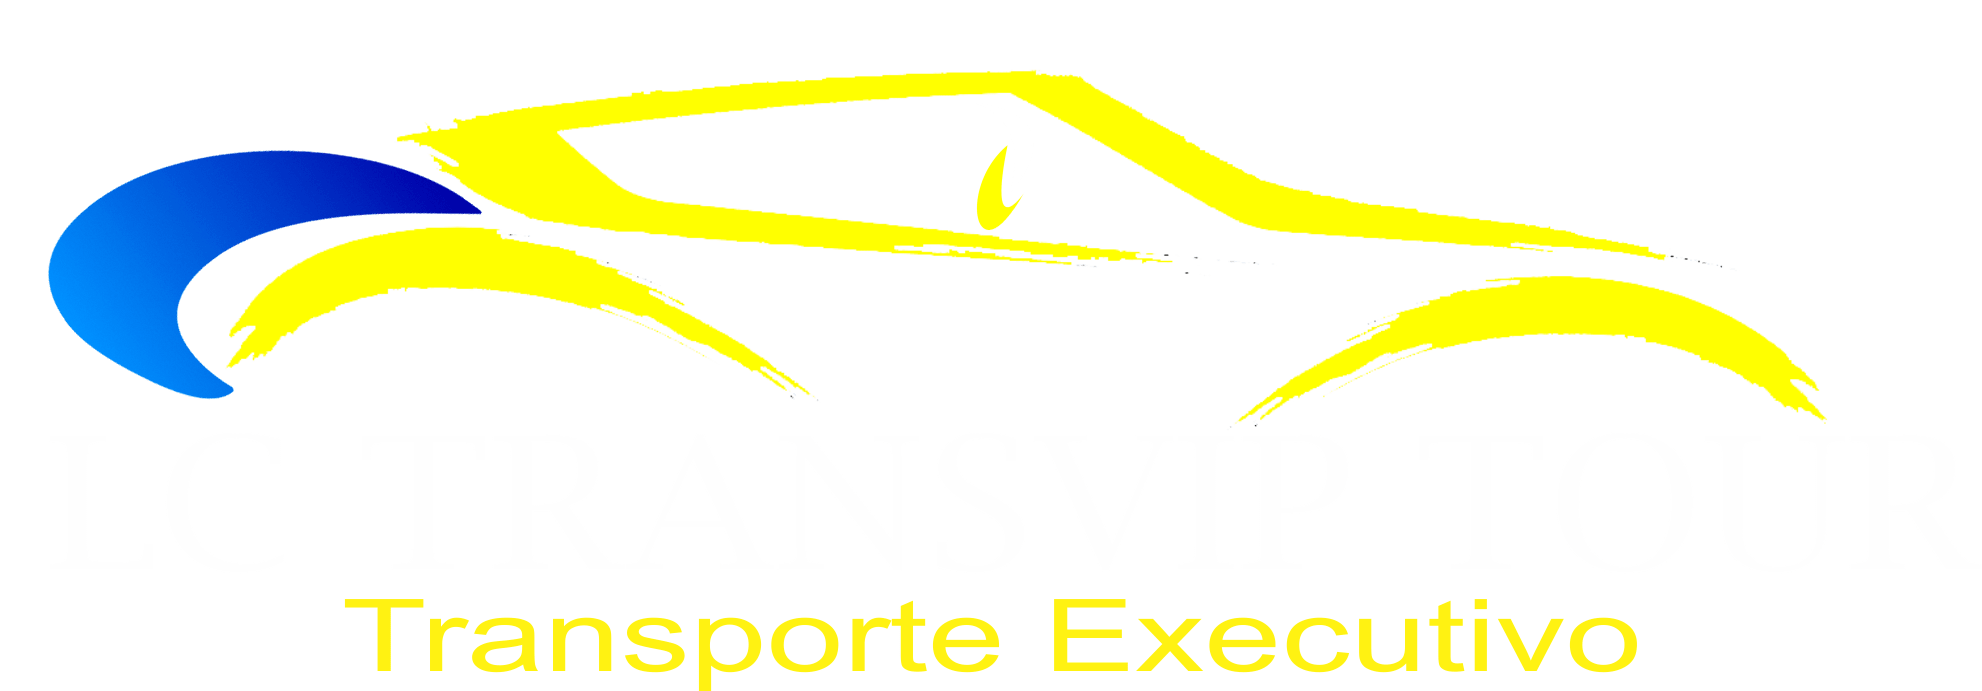 Transfer Executivo no Cursino,Empresa de Transfer Executivo no Cursino,Transfer Executivo no Cursino Urgente,Transfer Executivo no Cursino em São Paulo,Transfer Executivo no Cursino SP,Orçamento de Transfer Executivo no Cursino,LC Transvip Tour